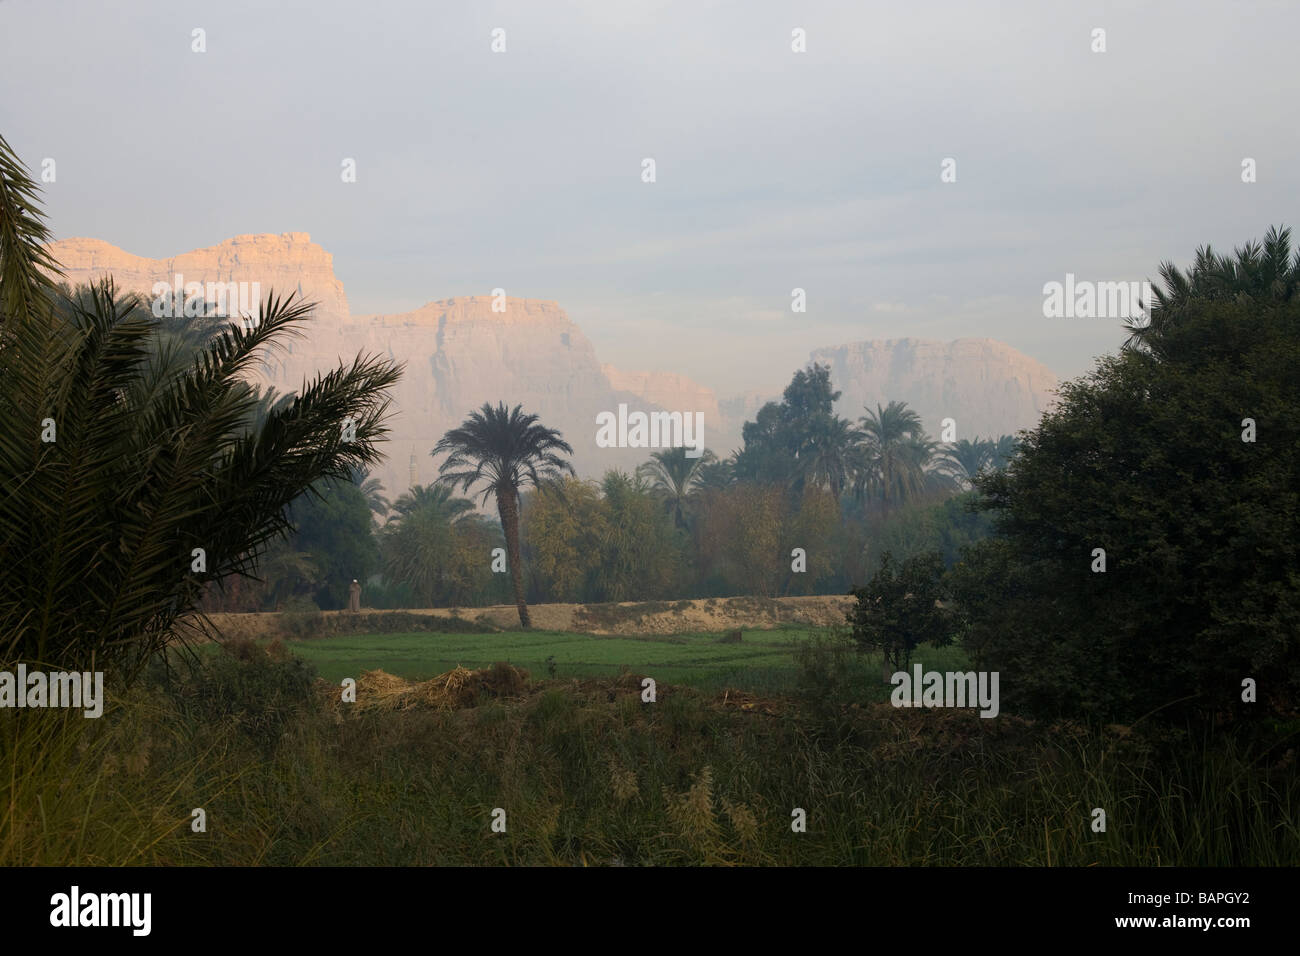 View of the Hills at Nag Hammadi, Nile Valley, Egypt - Stock Image